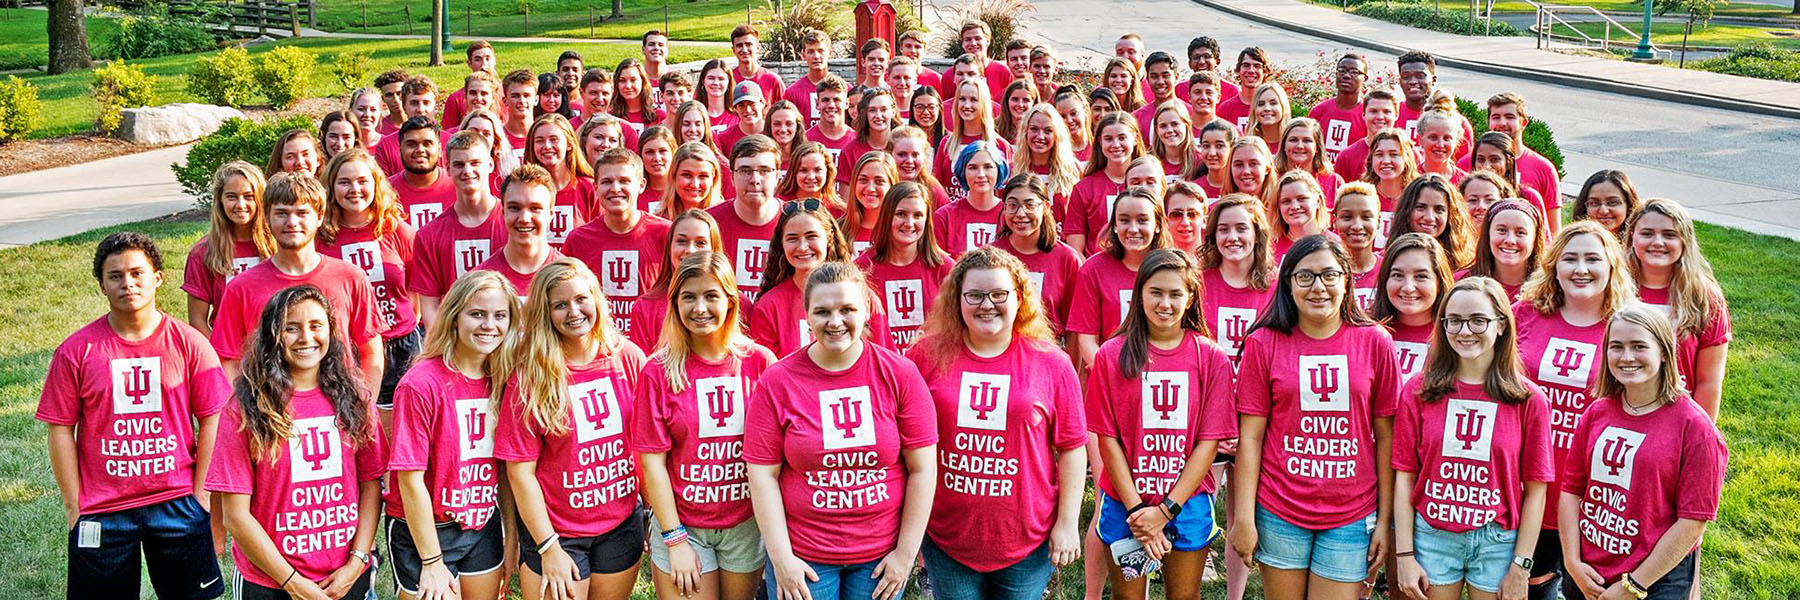 Group shot of Civic Leaders students, all in red Civic Leaders Center IU t-shirts.